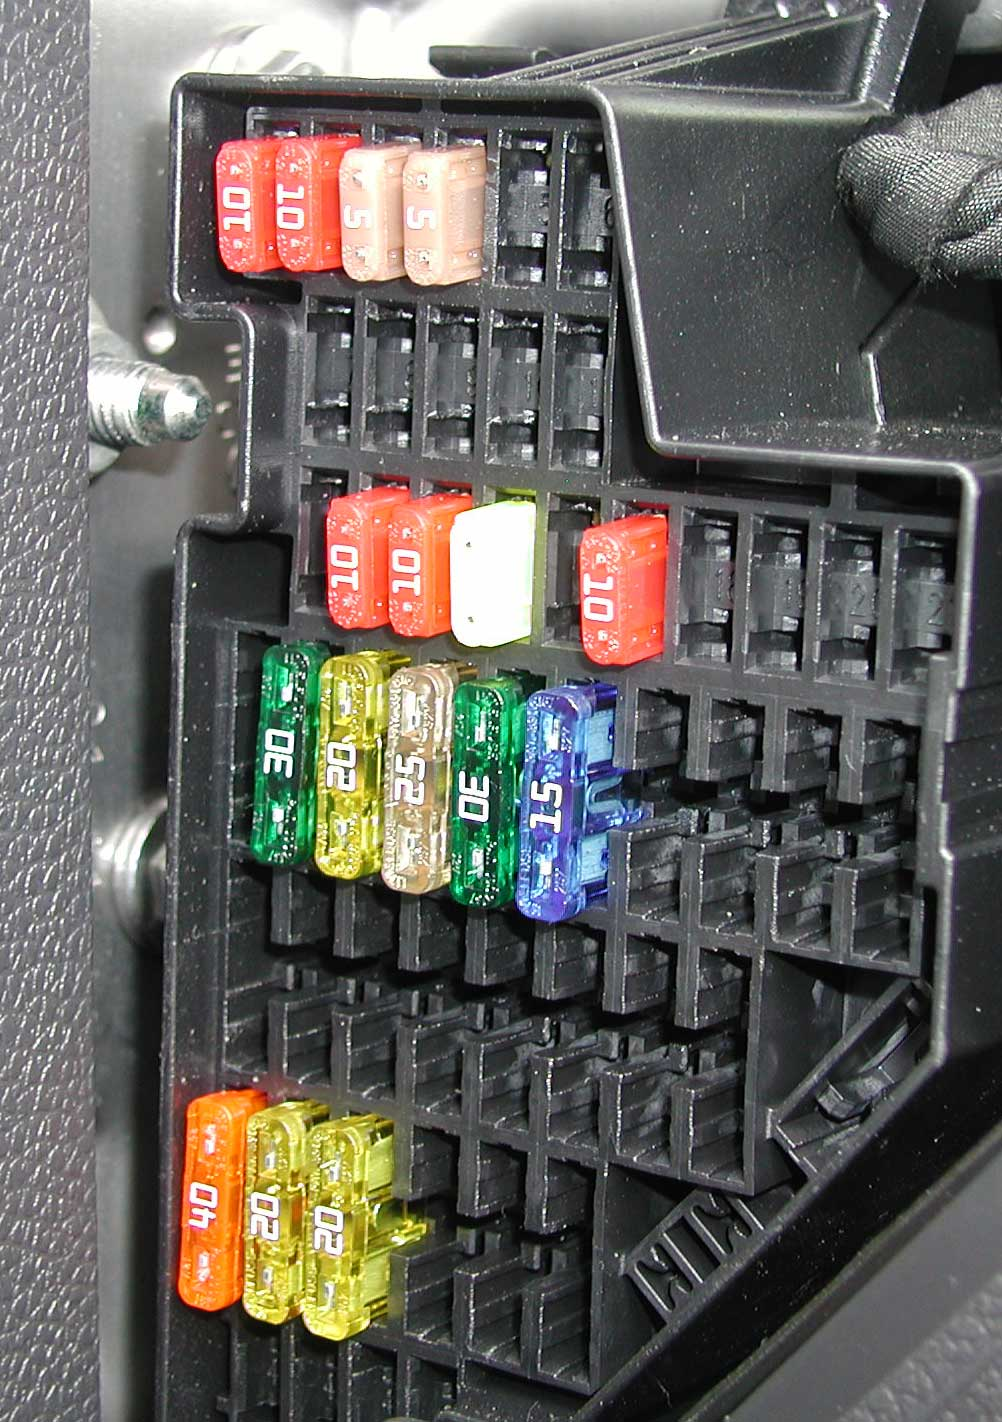 97 vw golf fuse box diagram 2012 vw golf fuse box diagram 2011 golf tdi fuse box (picture please!!!) - tdiclub forums